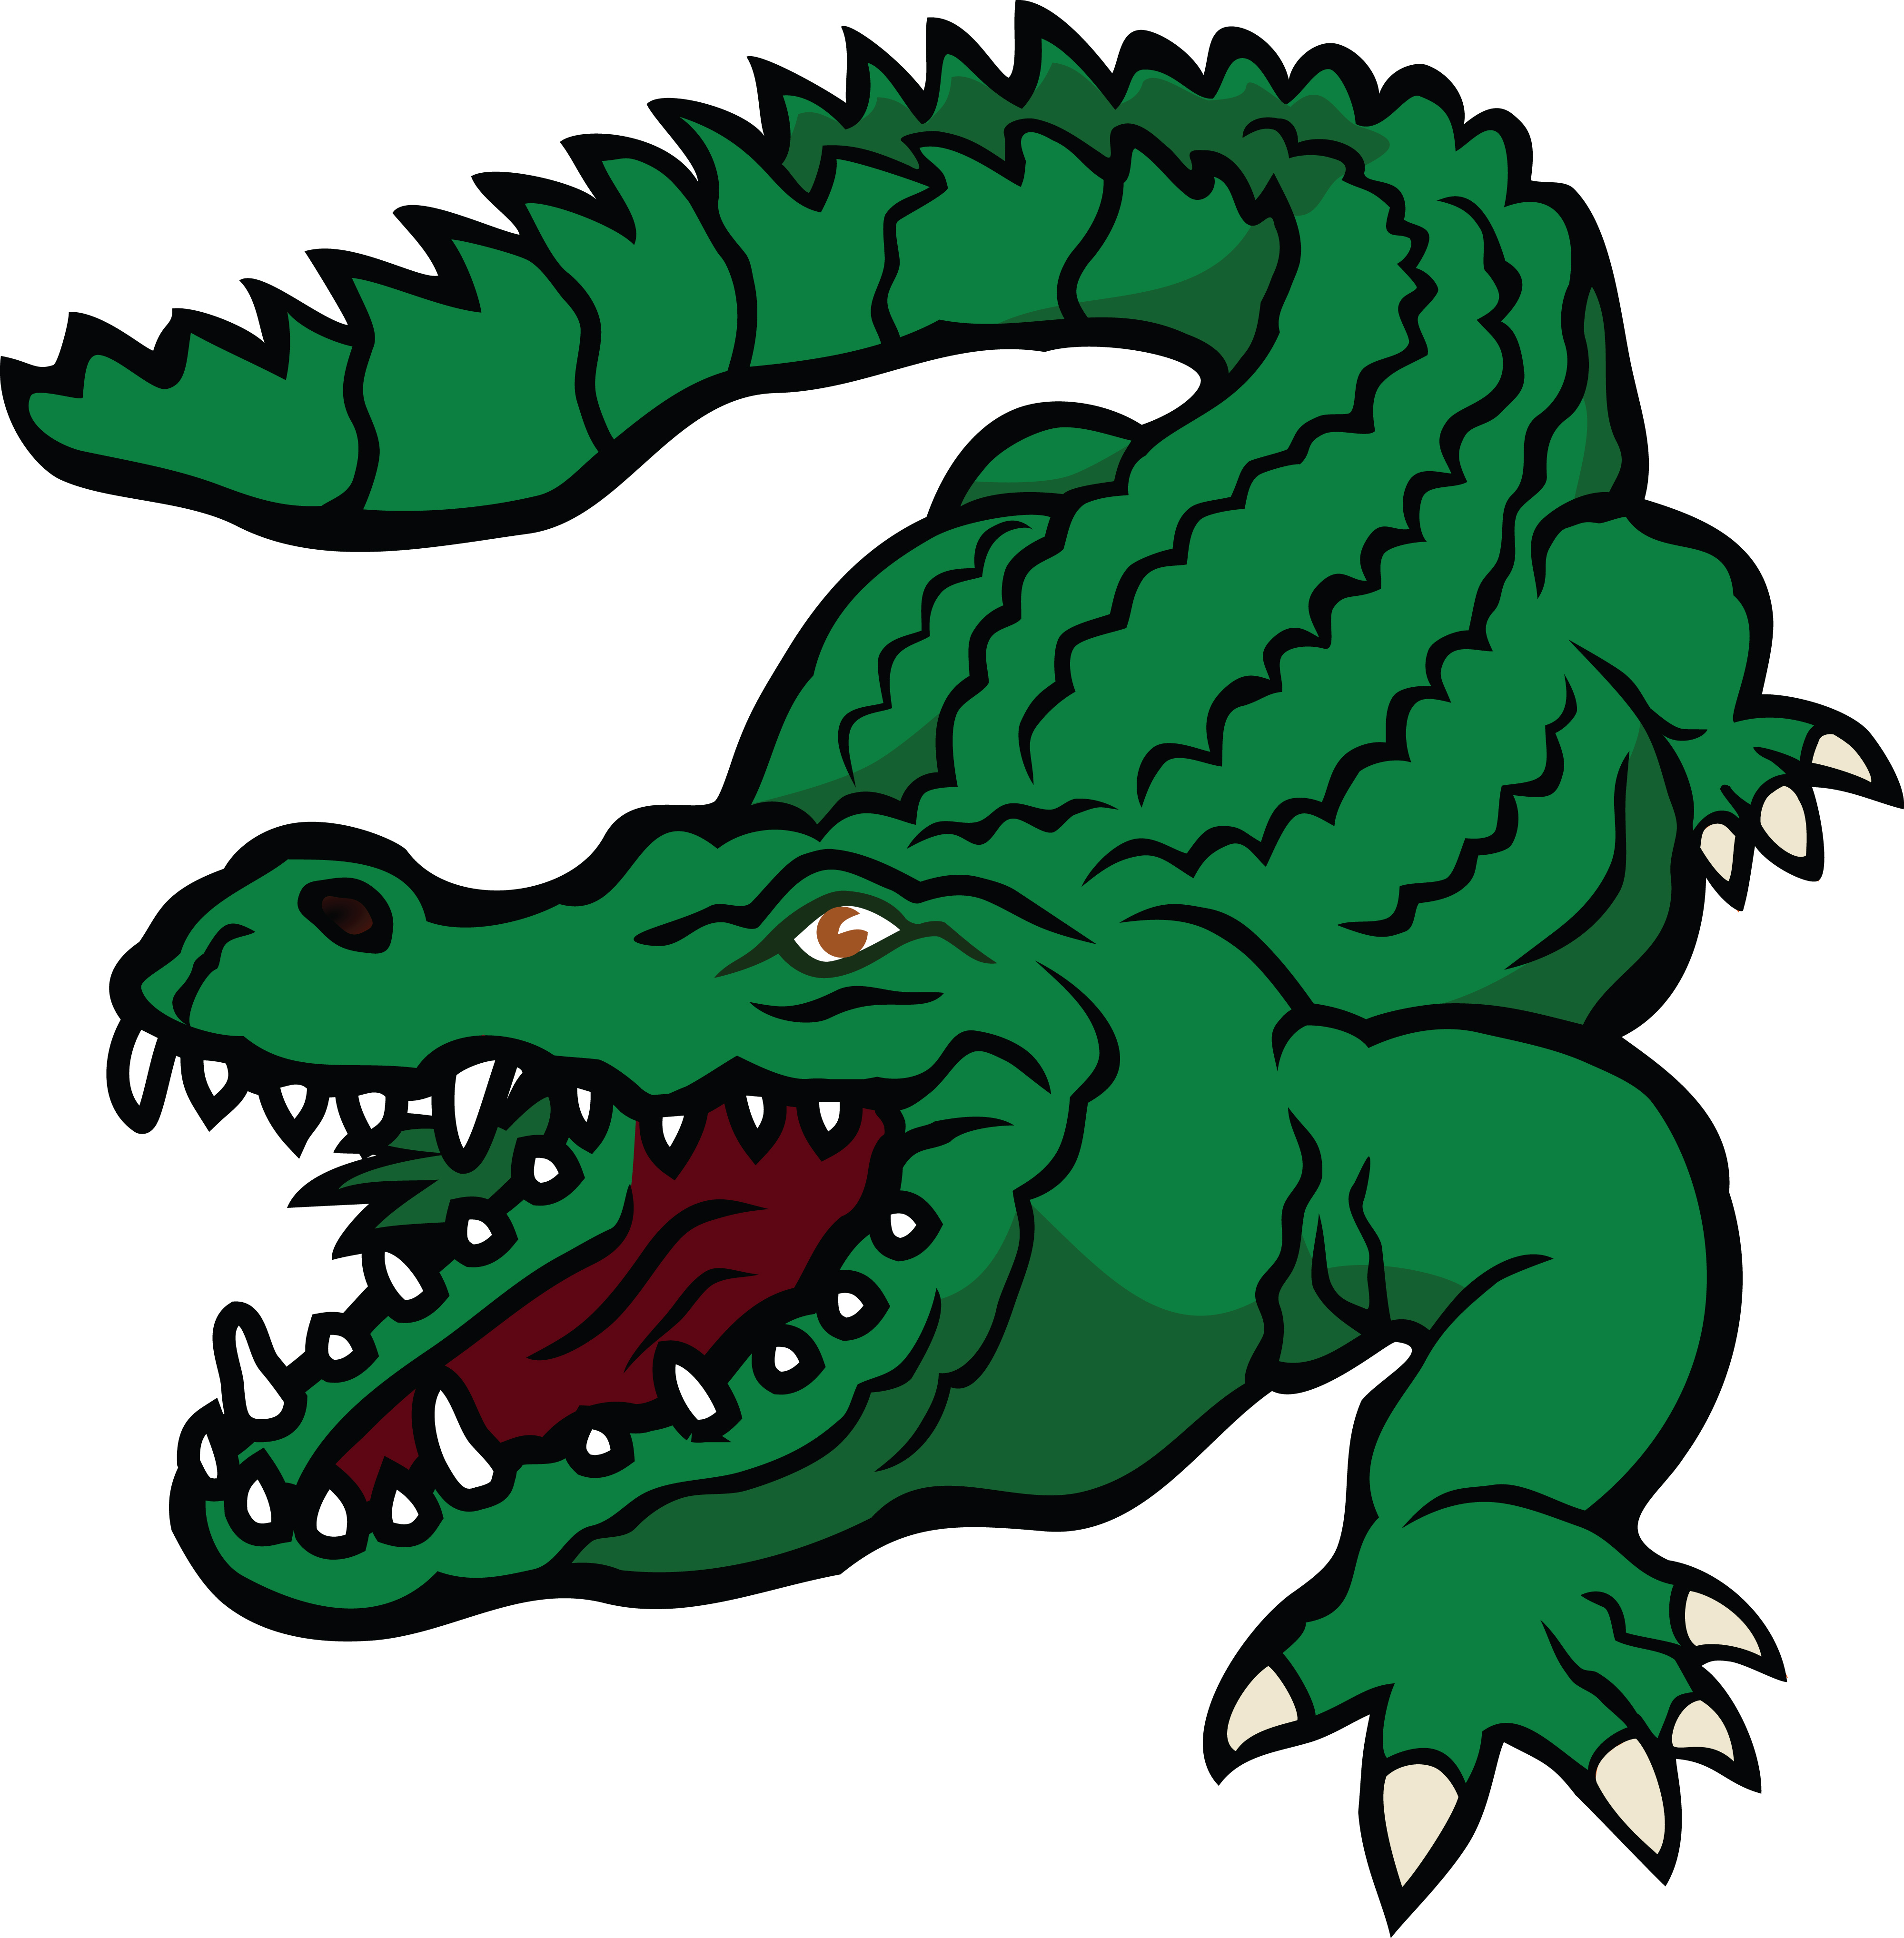 Gator clipart angry. Alligator images free download